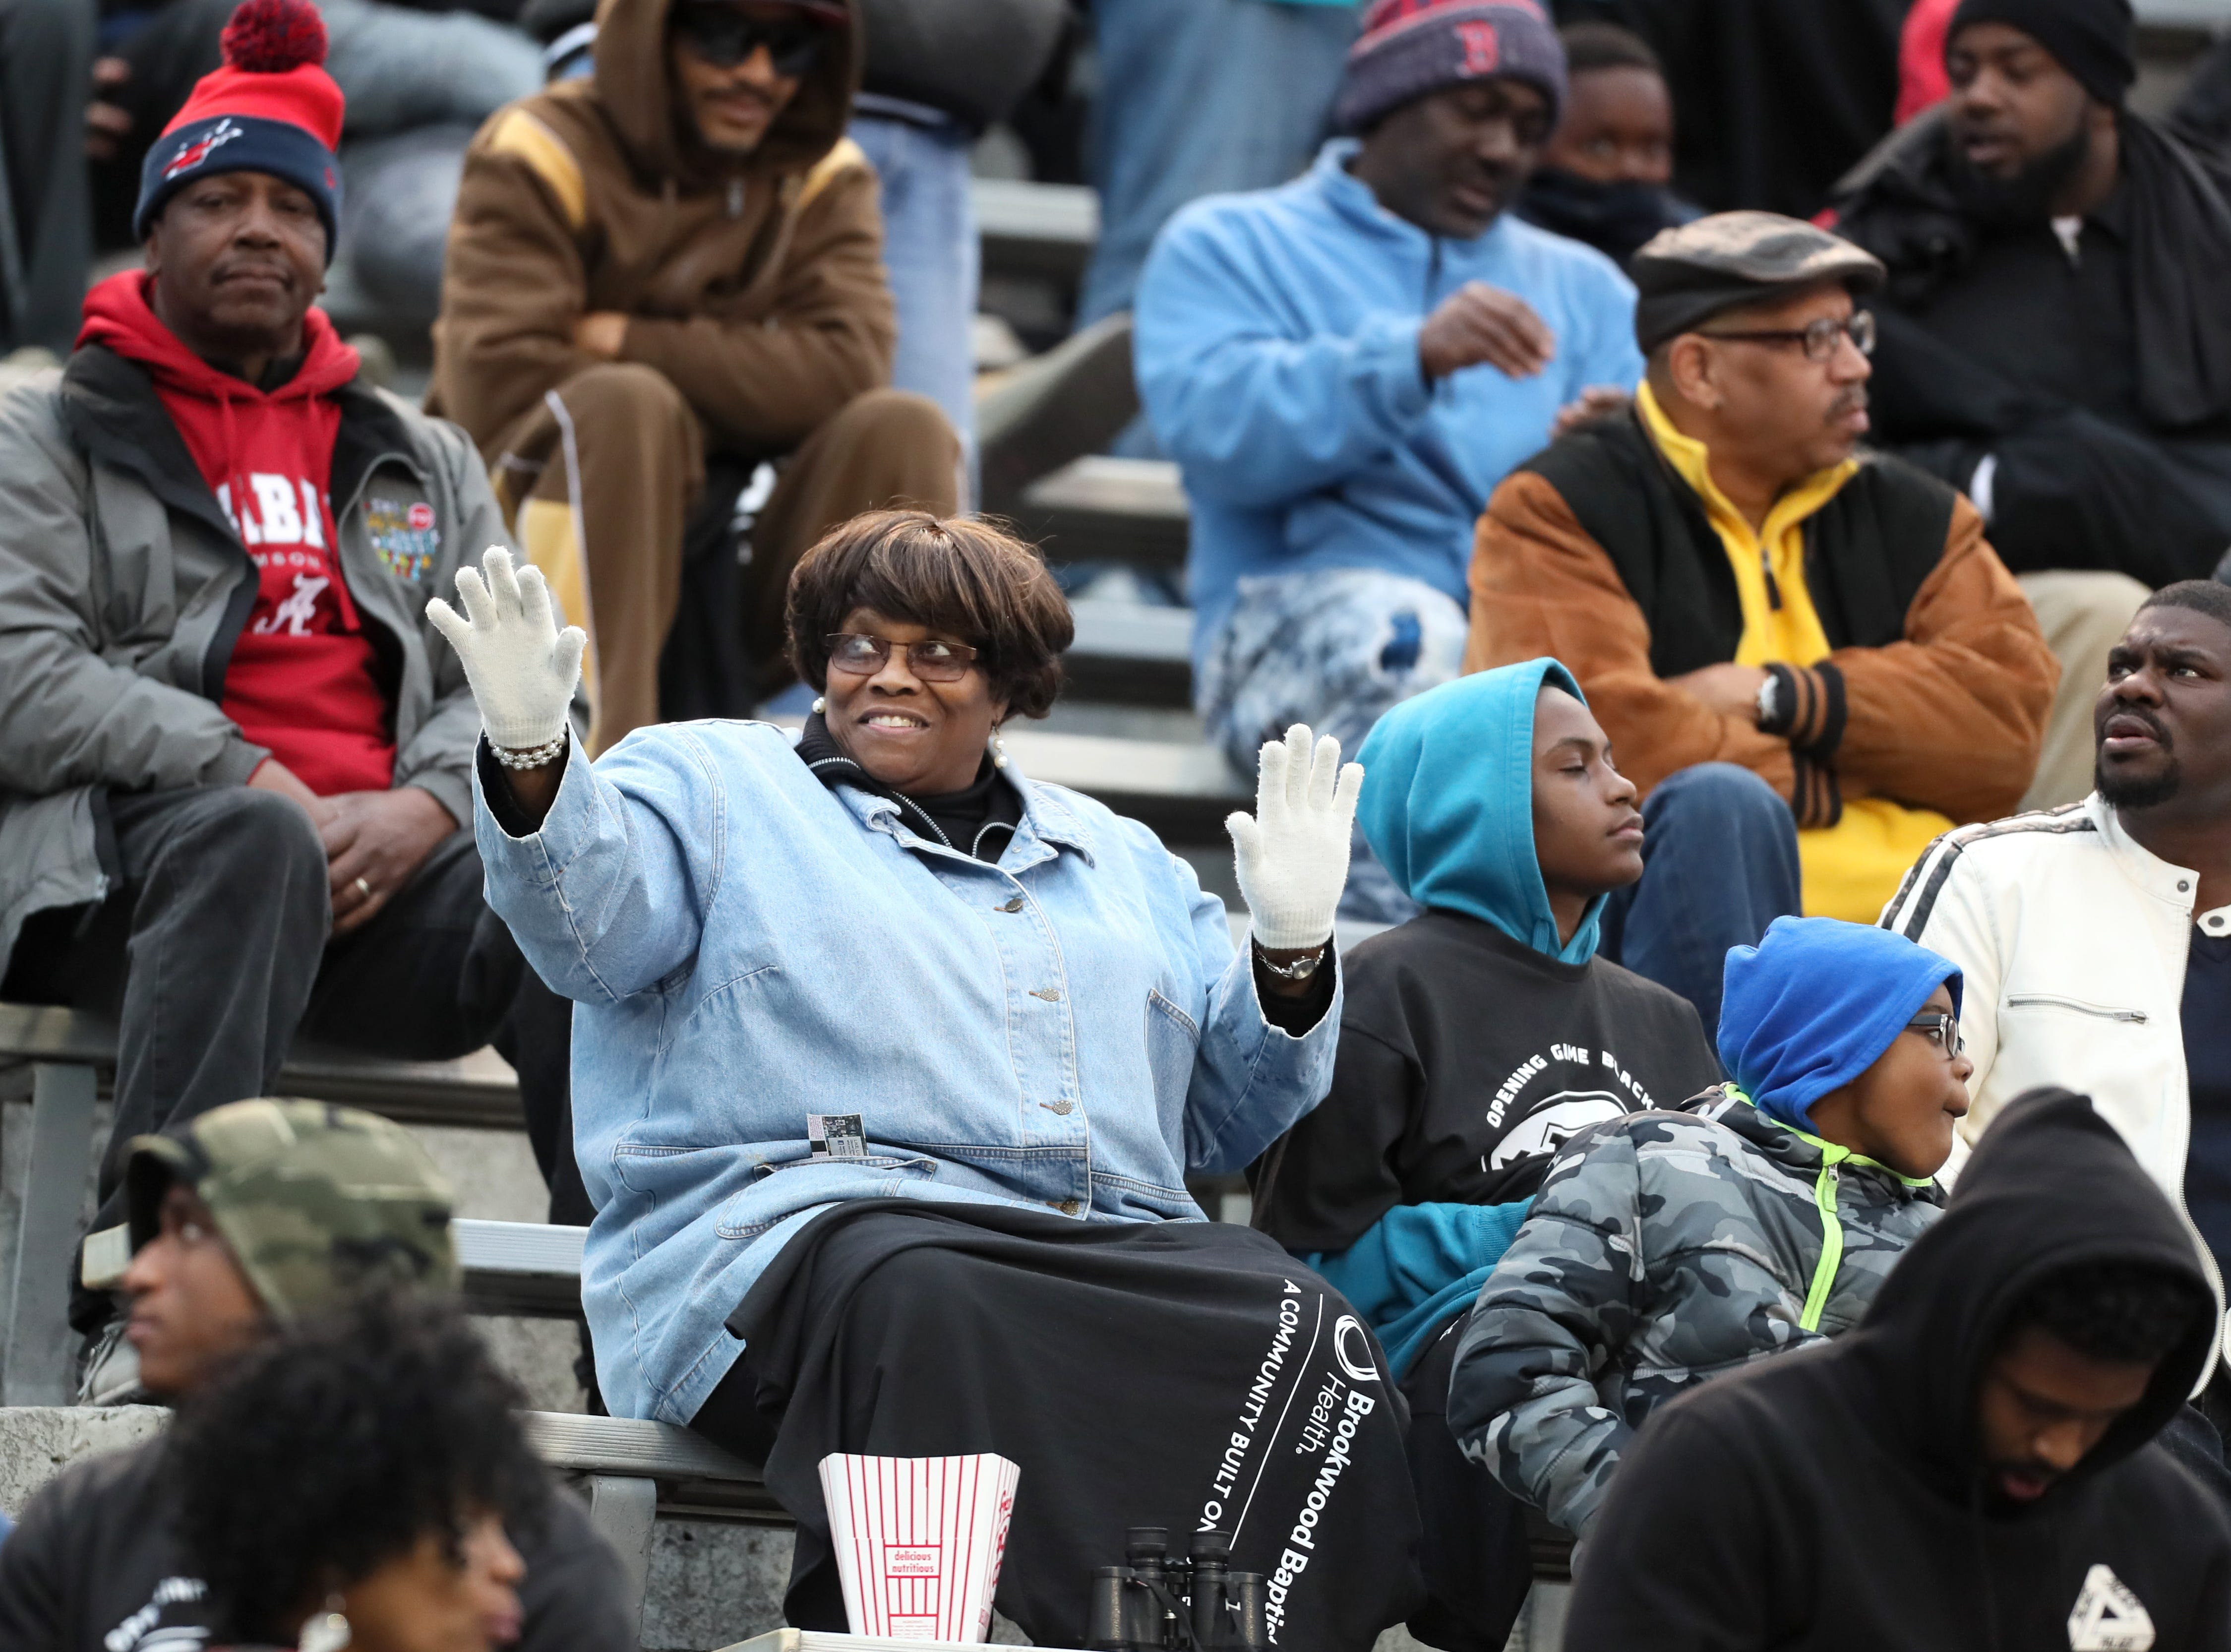 Fans watch as the Memphis Express take on the Birmingham Iron at Legion Field in Birmingham, Ala. on Sunday, Feb. 10, 2019.